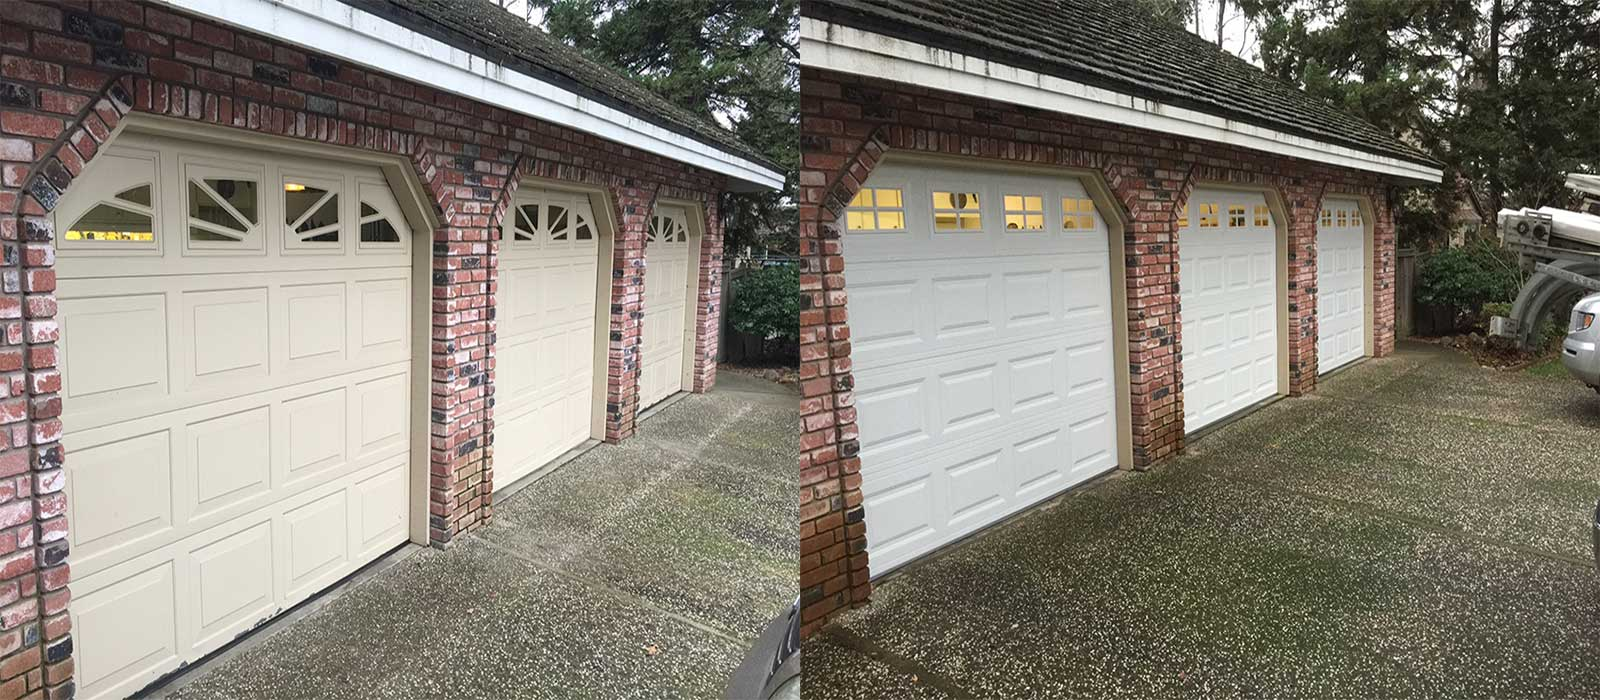 Garage door opener repair install maintain services 530 320 8879 before and after photo of a garage with three one car garage doors and openers rubansaba